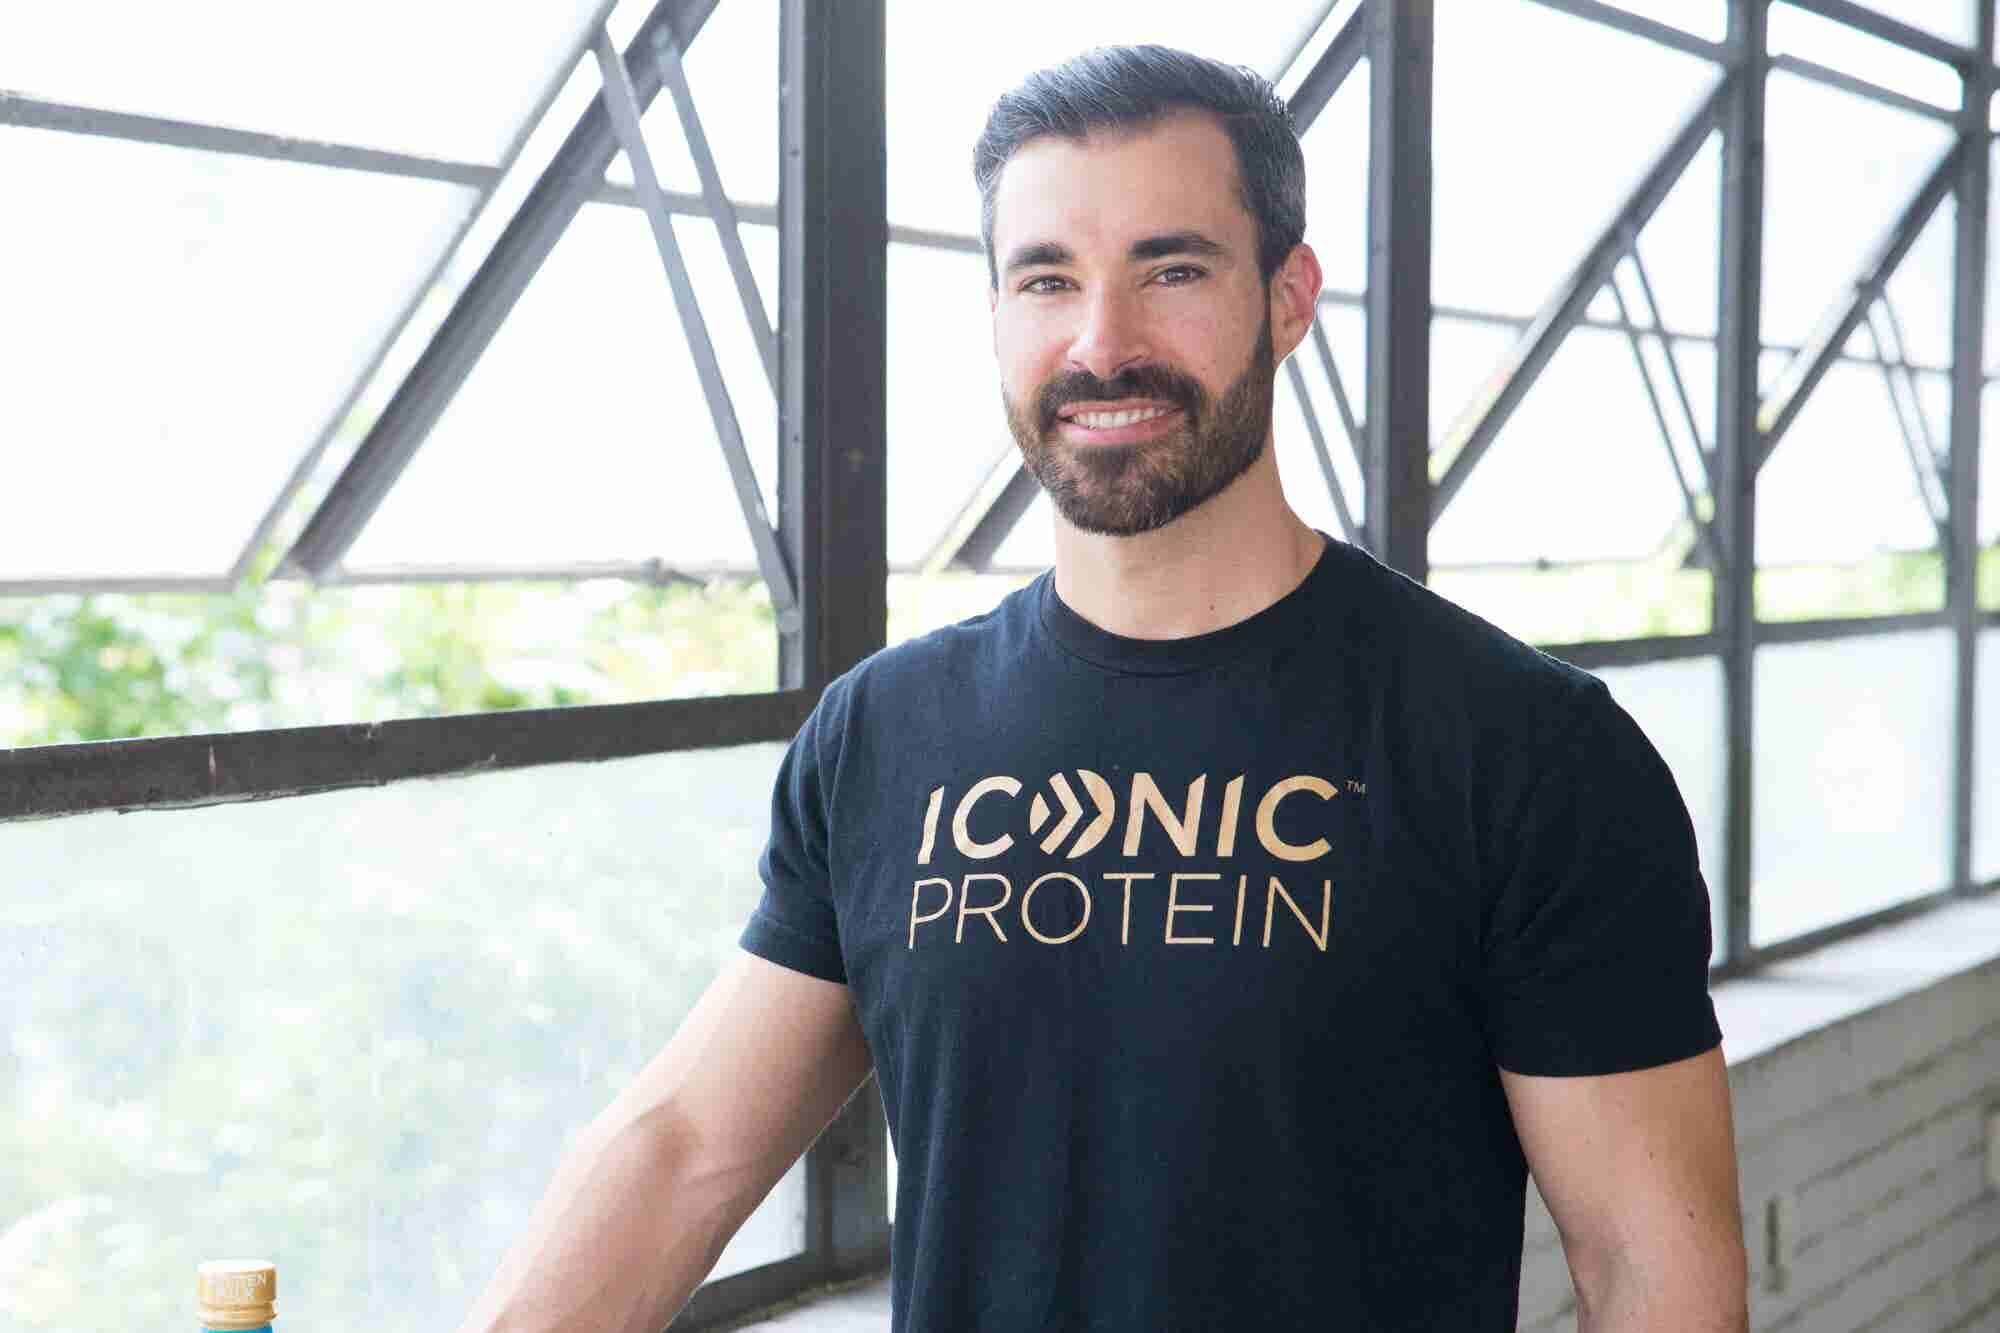 This Protein Drink Entrepreneur Was Able to Raise $8 Million -- After...